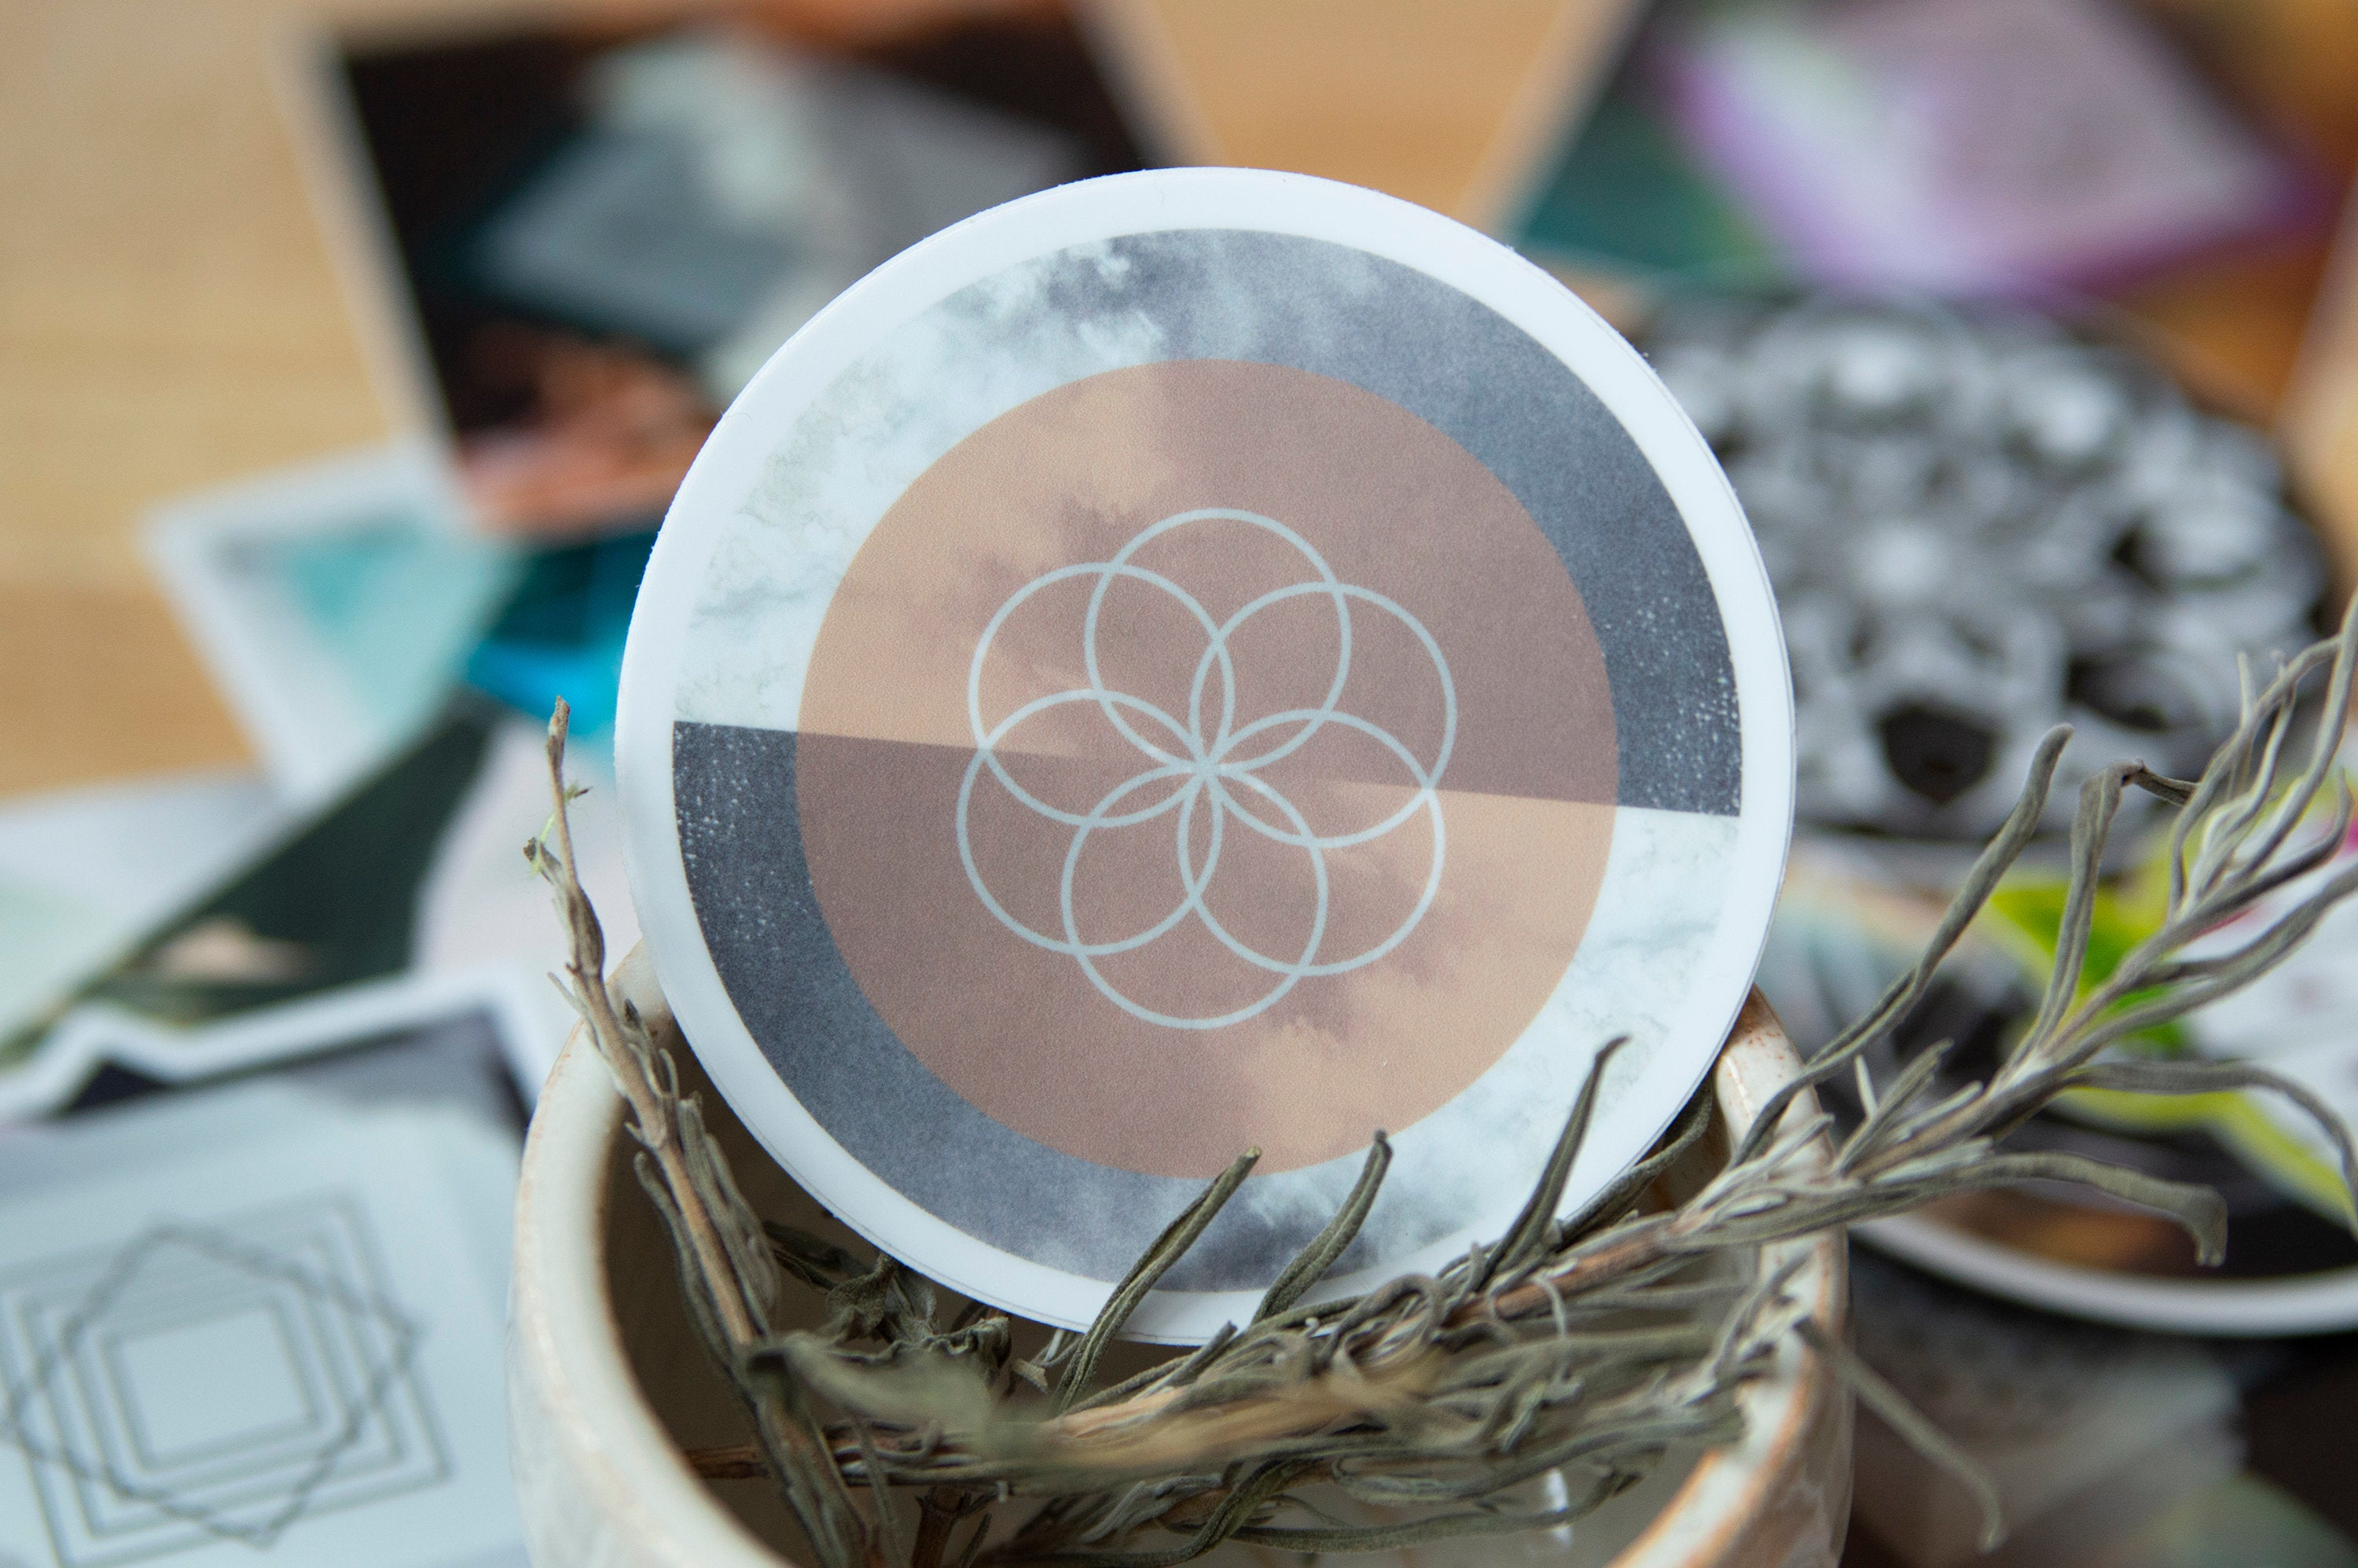 Seed of Life Sacred Geometry Sticker - Vinyl Stickers, flower of life, energy, crystal grid, boho, tarot, powerful, wiccan, witch,